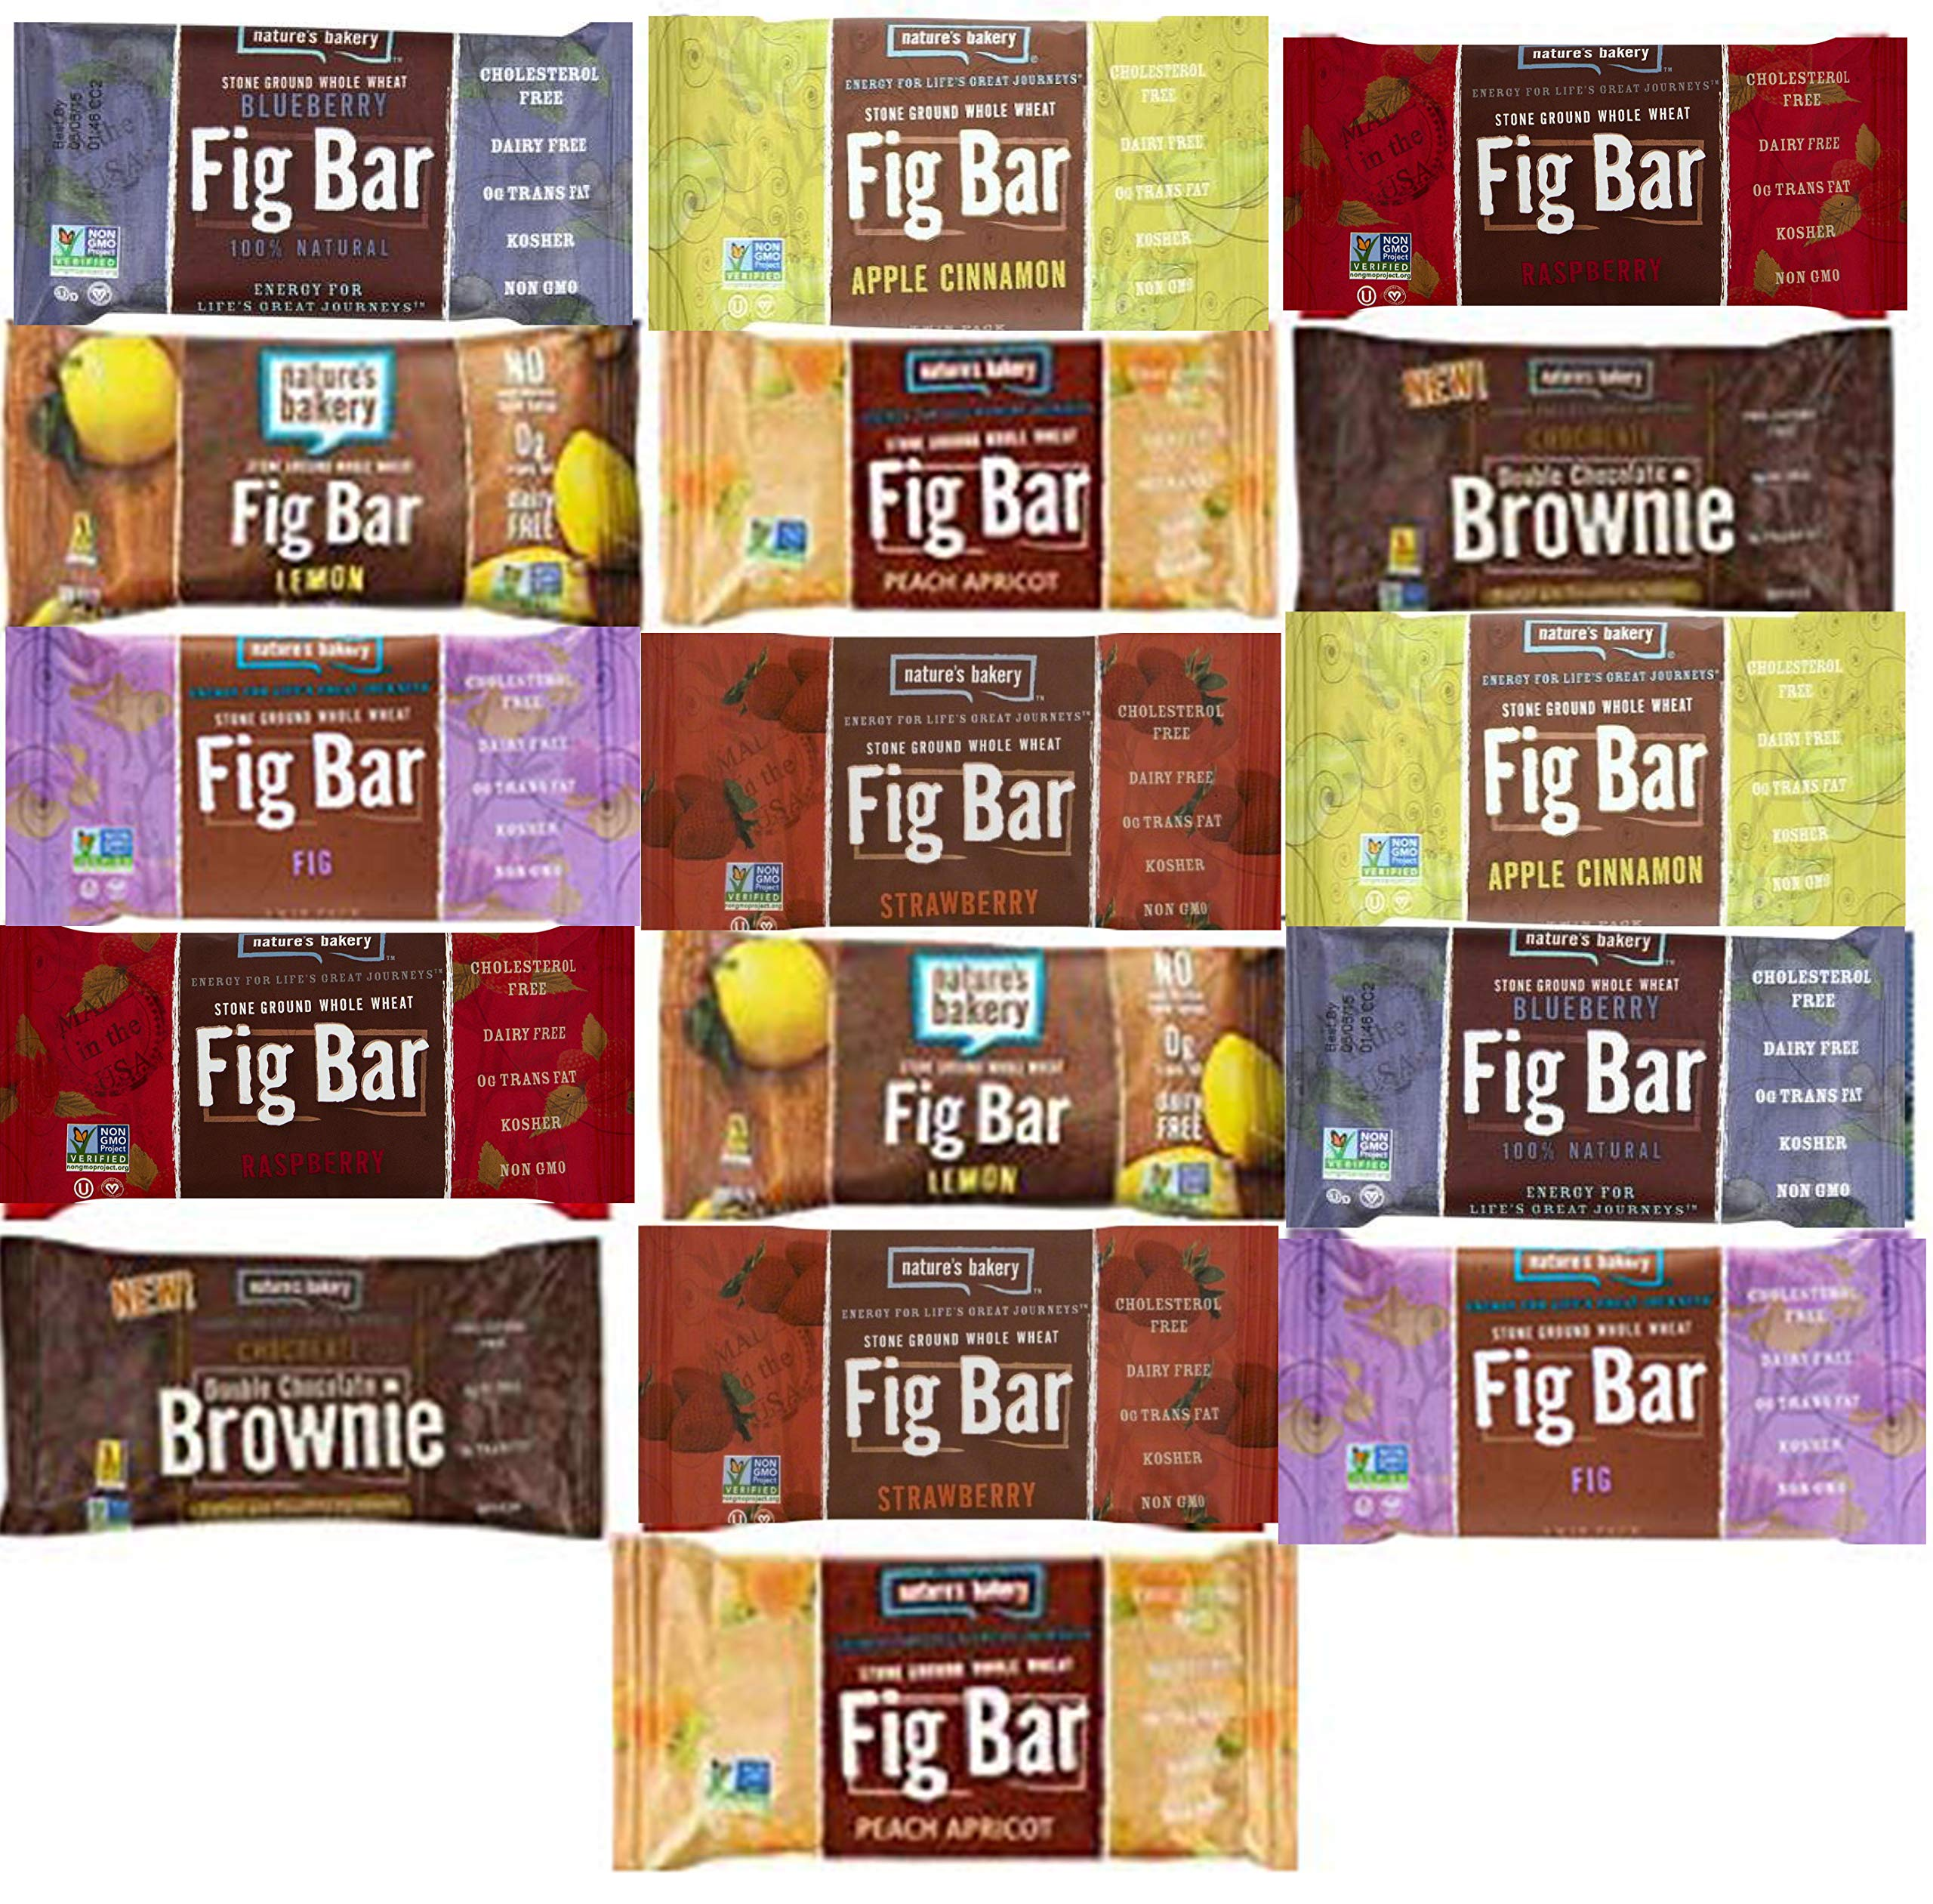 Nature's Bakery Stone Ground Whole Wheat Fig Bar (16 COUNT) Variety Pack Sampler, All Natural NON GMO Snack Food (16 Count)